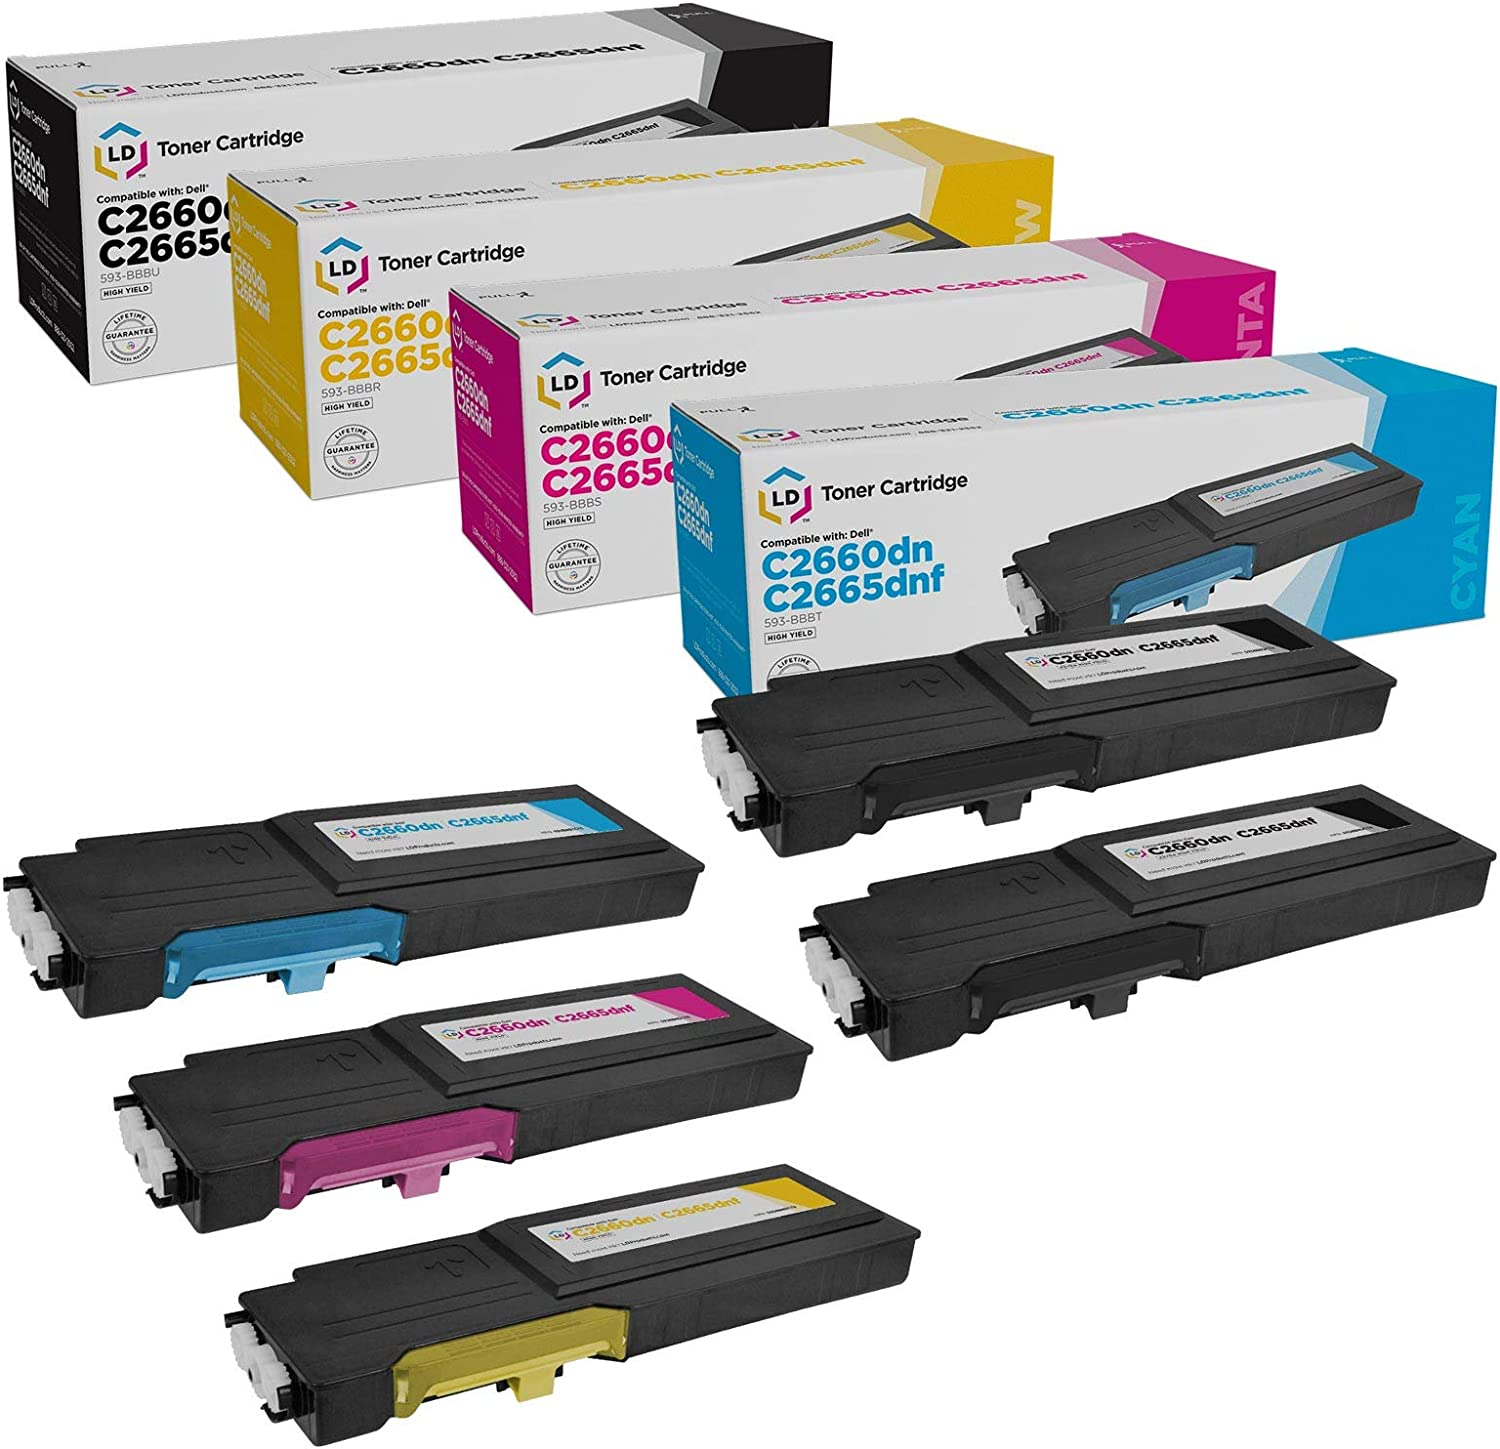 LD Compatible Toner Cartridge Replacement for Dell C2660dn & C2665dnf High Yield (2 Black, 1 Cyan, 1 Magenta, 1 Yellow, 5-Pack)